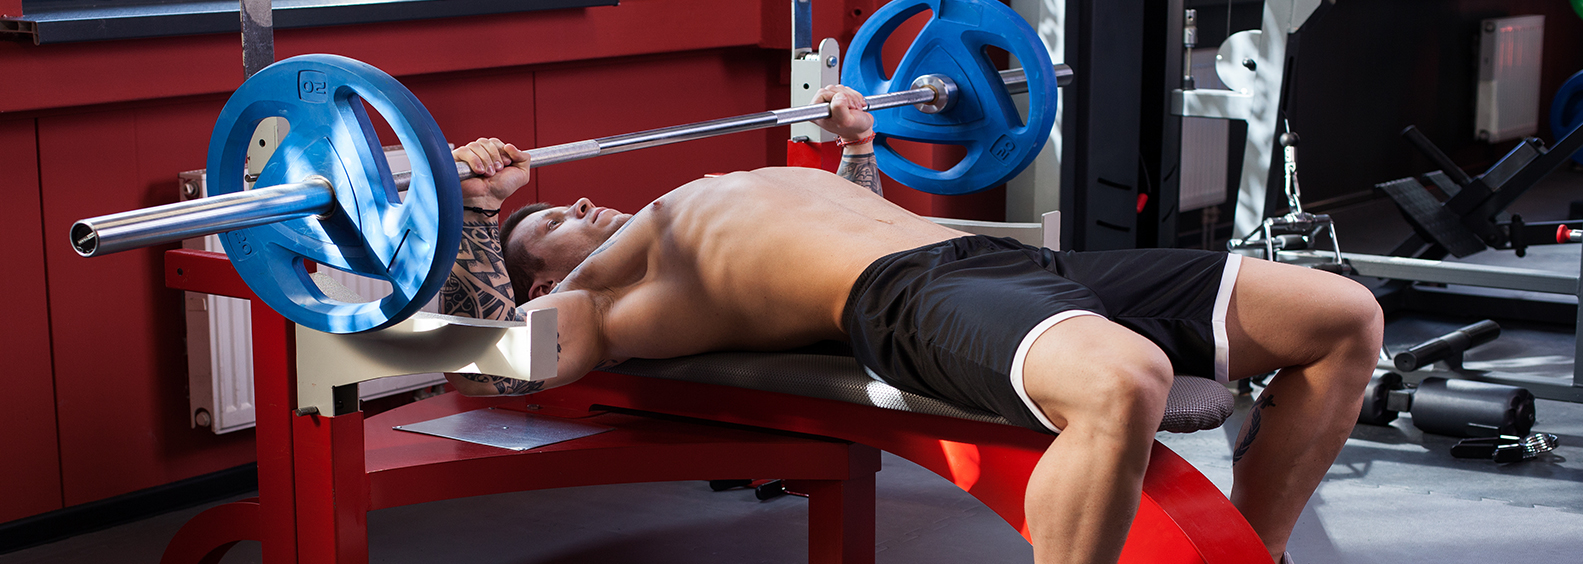 45 Minute Chest Workout to Build Impressive Pecs